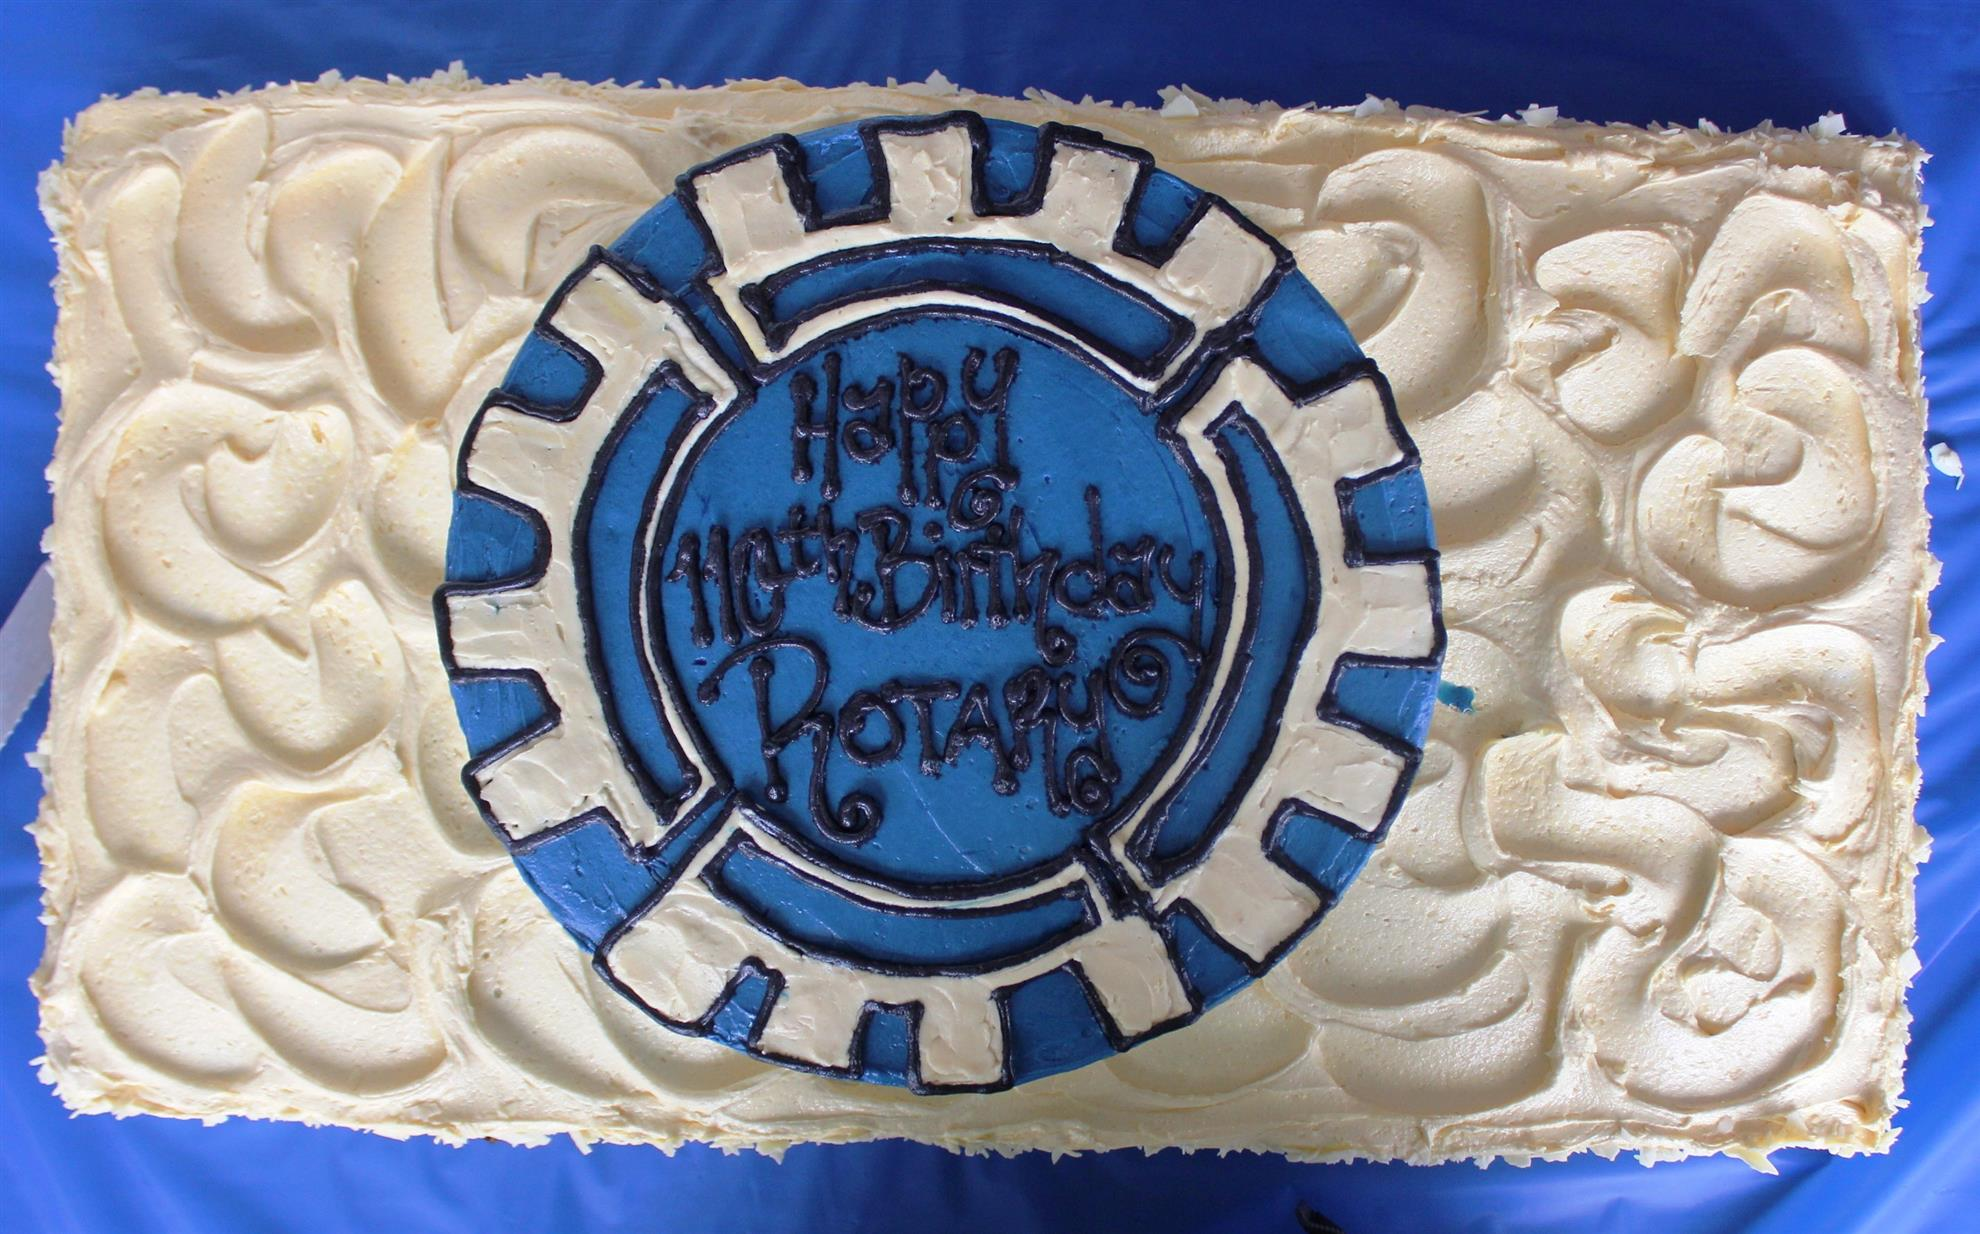 110 Its A Piece Of Cake Rotary Club Of Stanthorpe